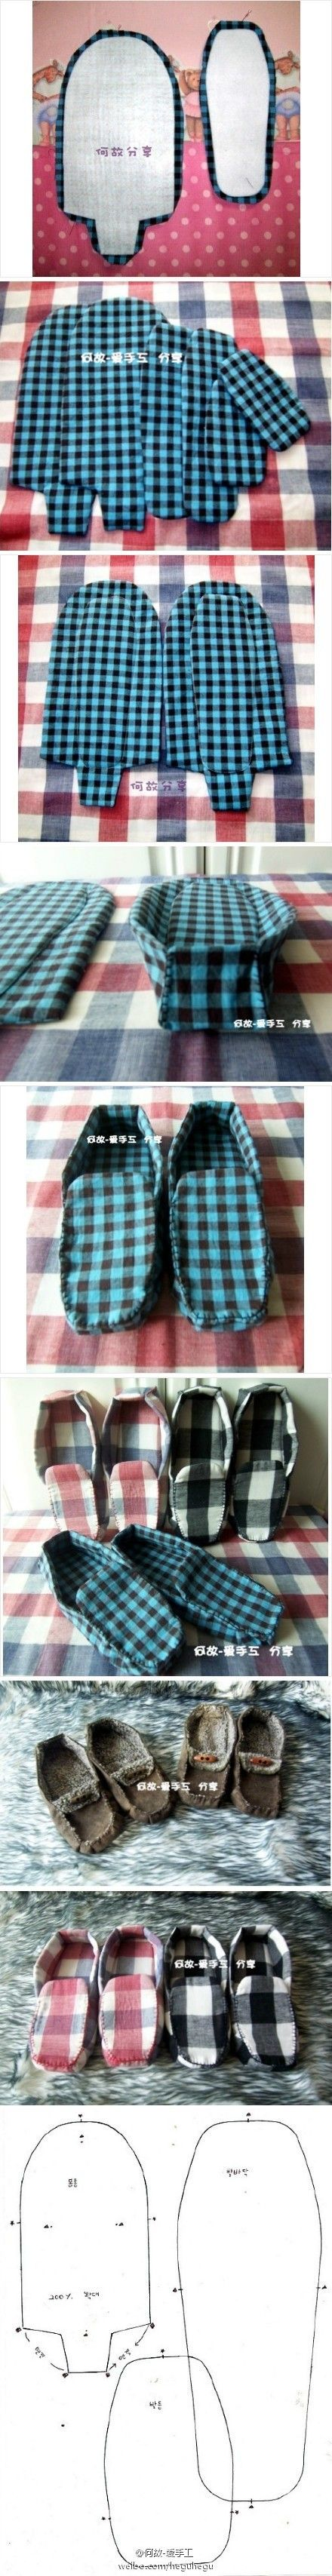 DIY slippers/moccasins